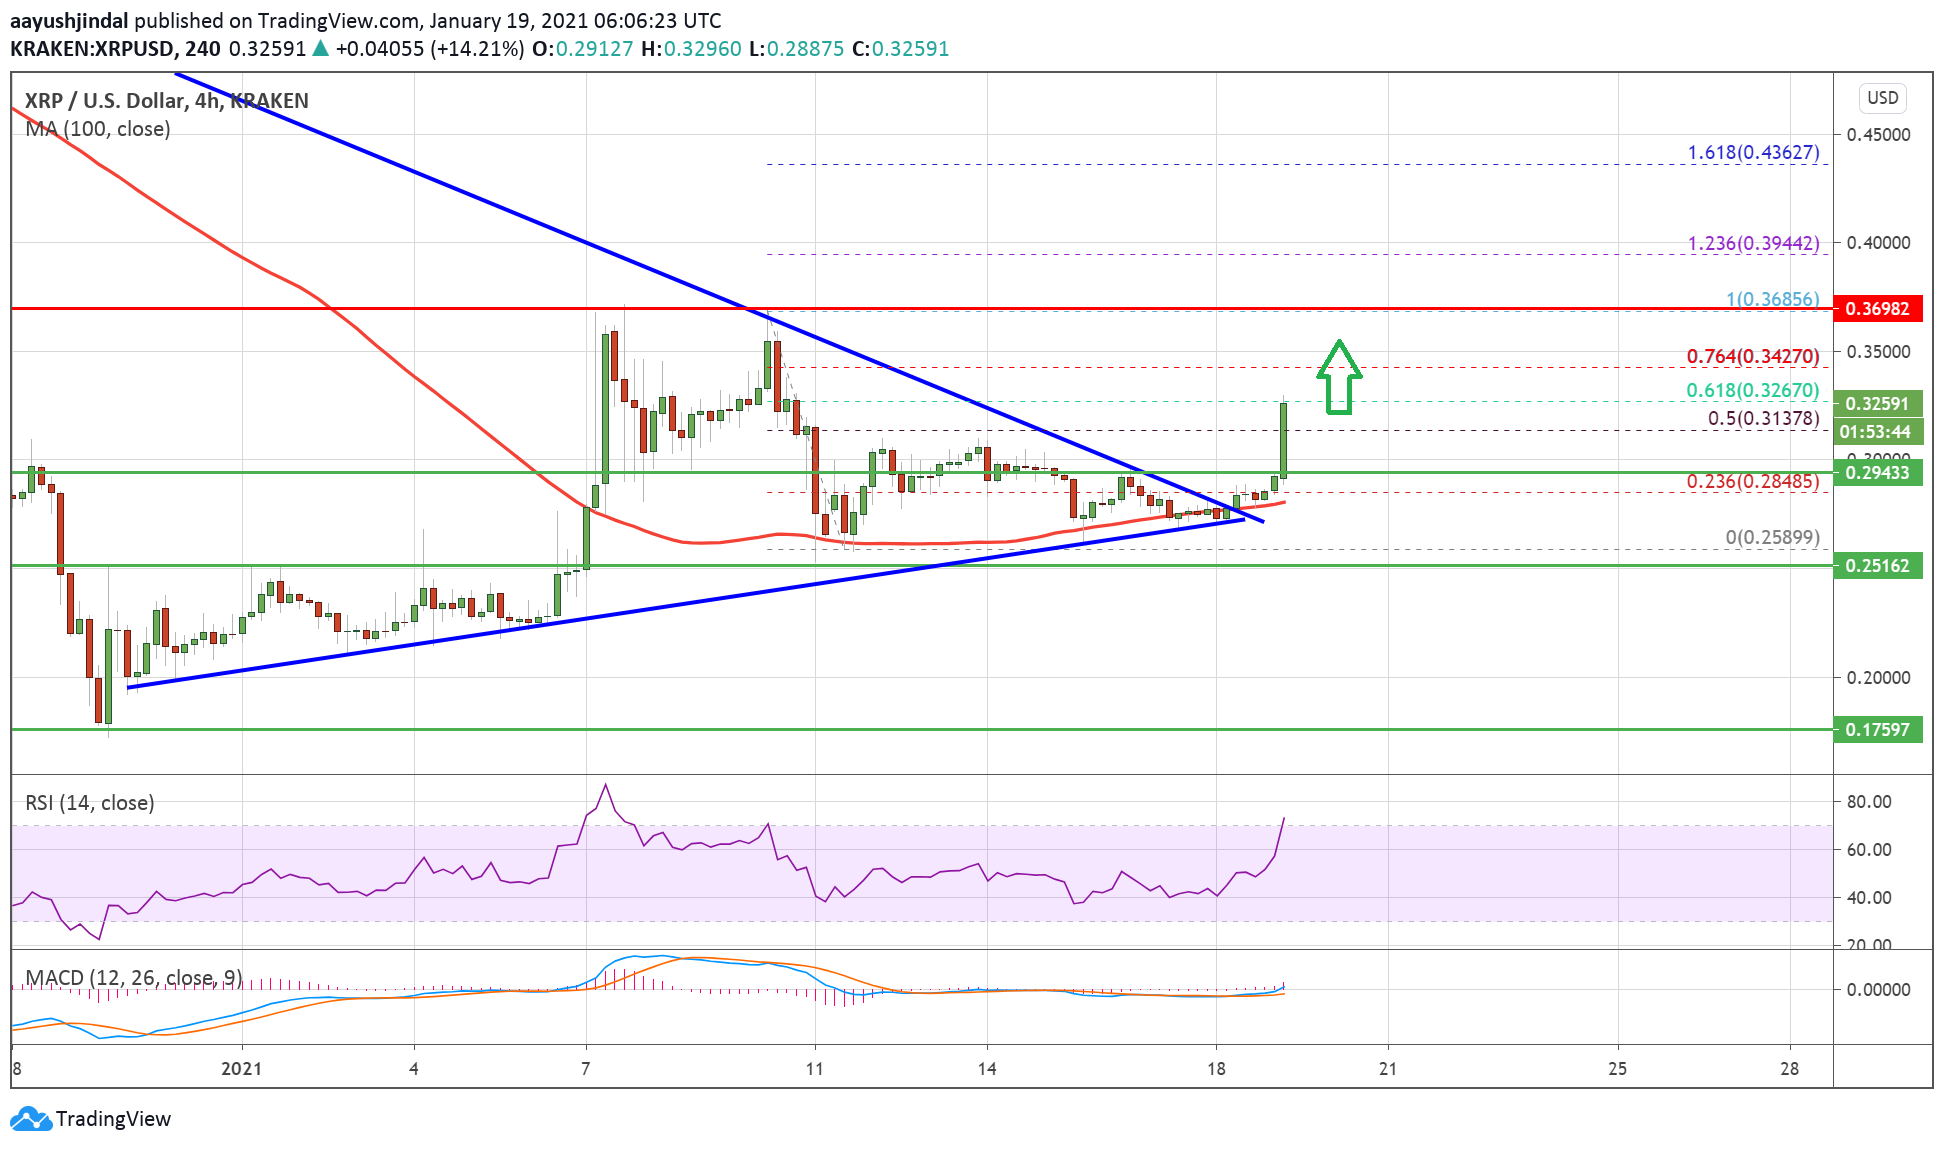 Charted: Ripple (XRP) Surges 15%, Why The Bulls Are Back In Control